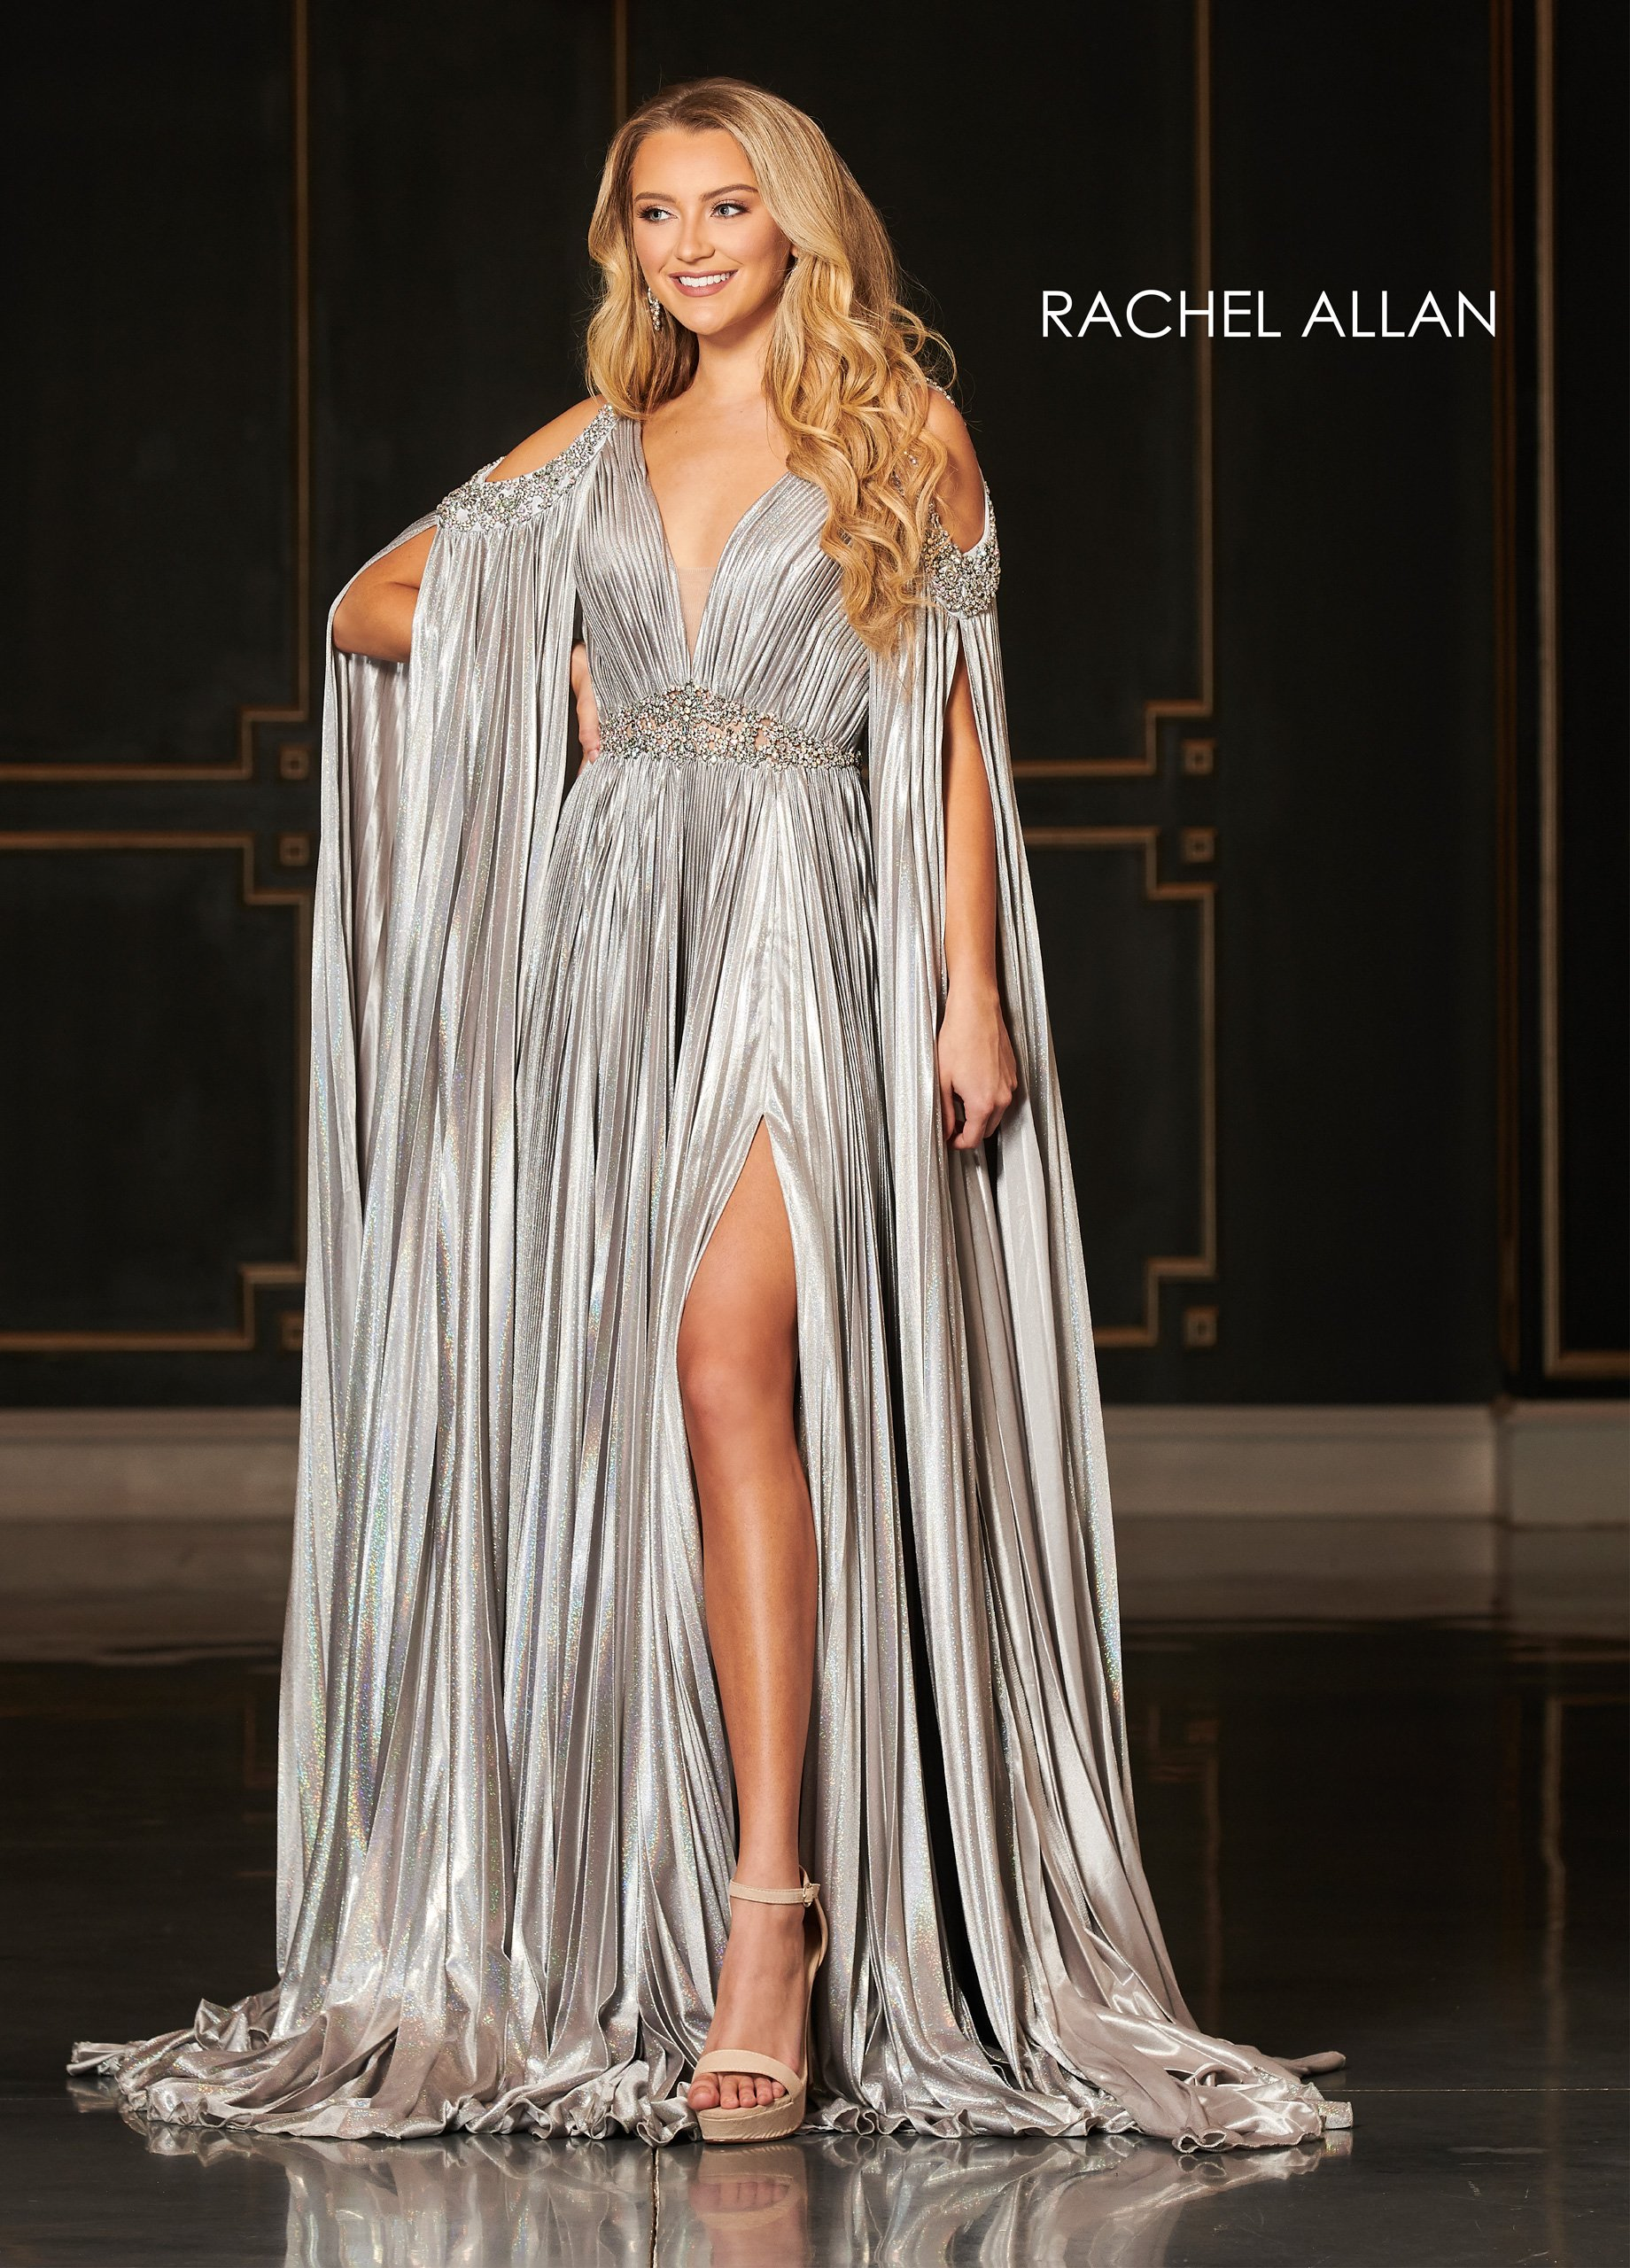 V-Neck A-Line Couture Dresses in Silver/gunmetal Color